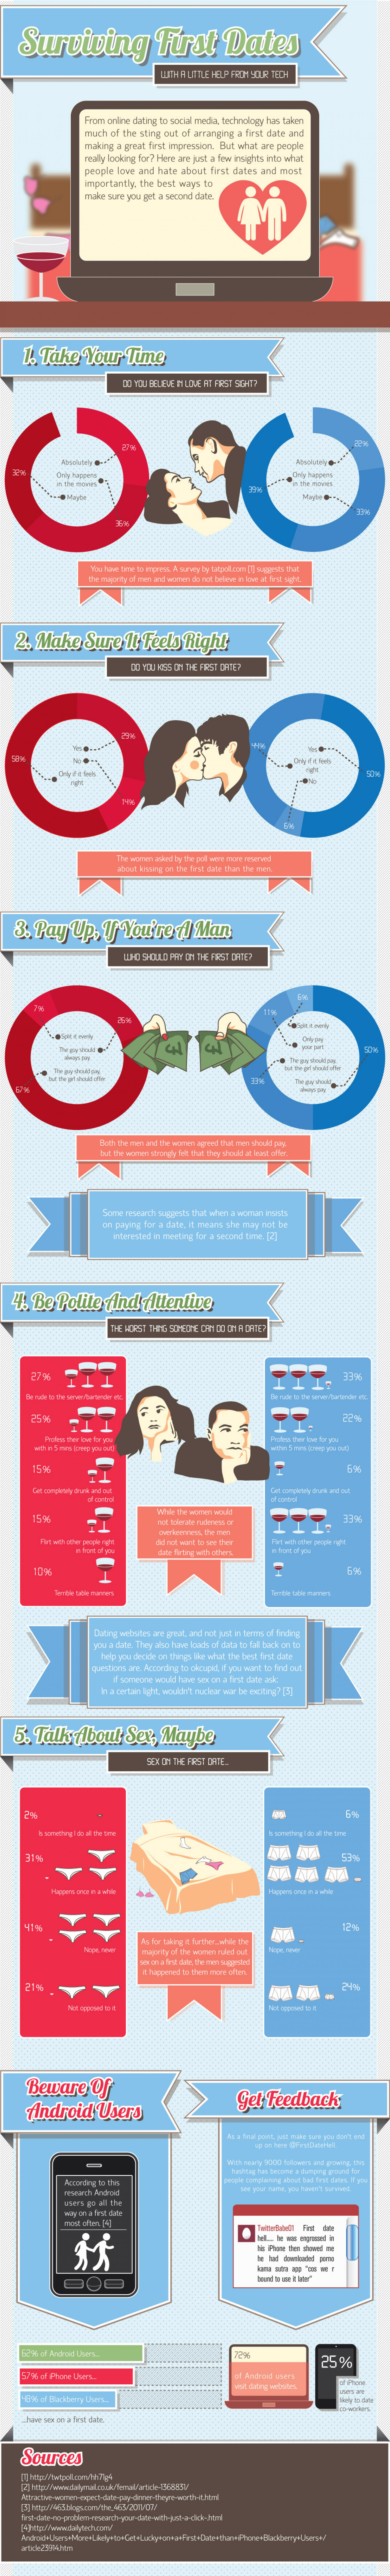 First Date Survival Guide Infographic